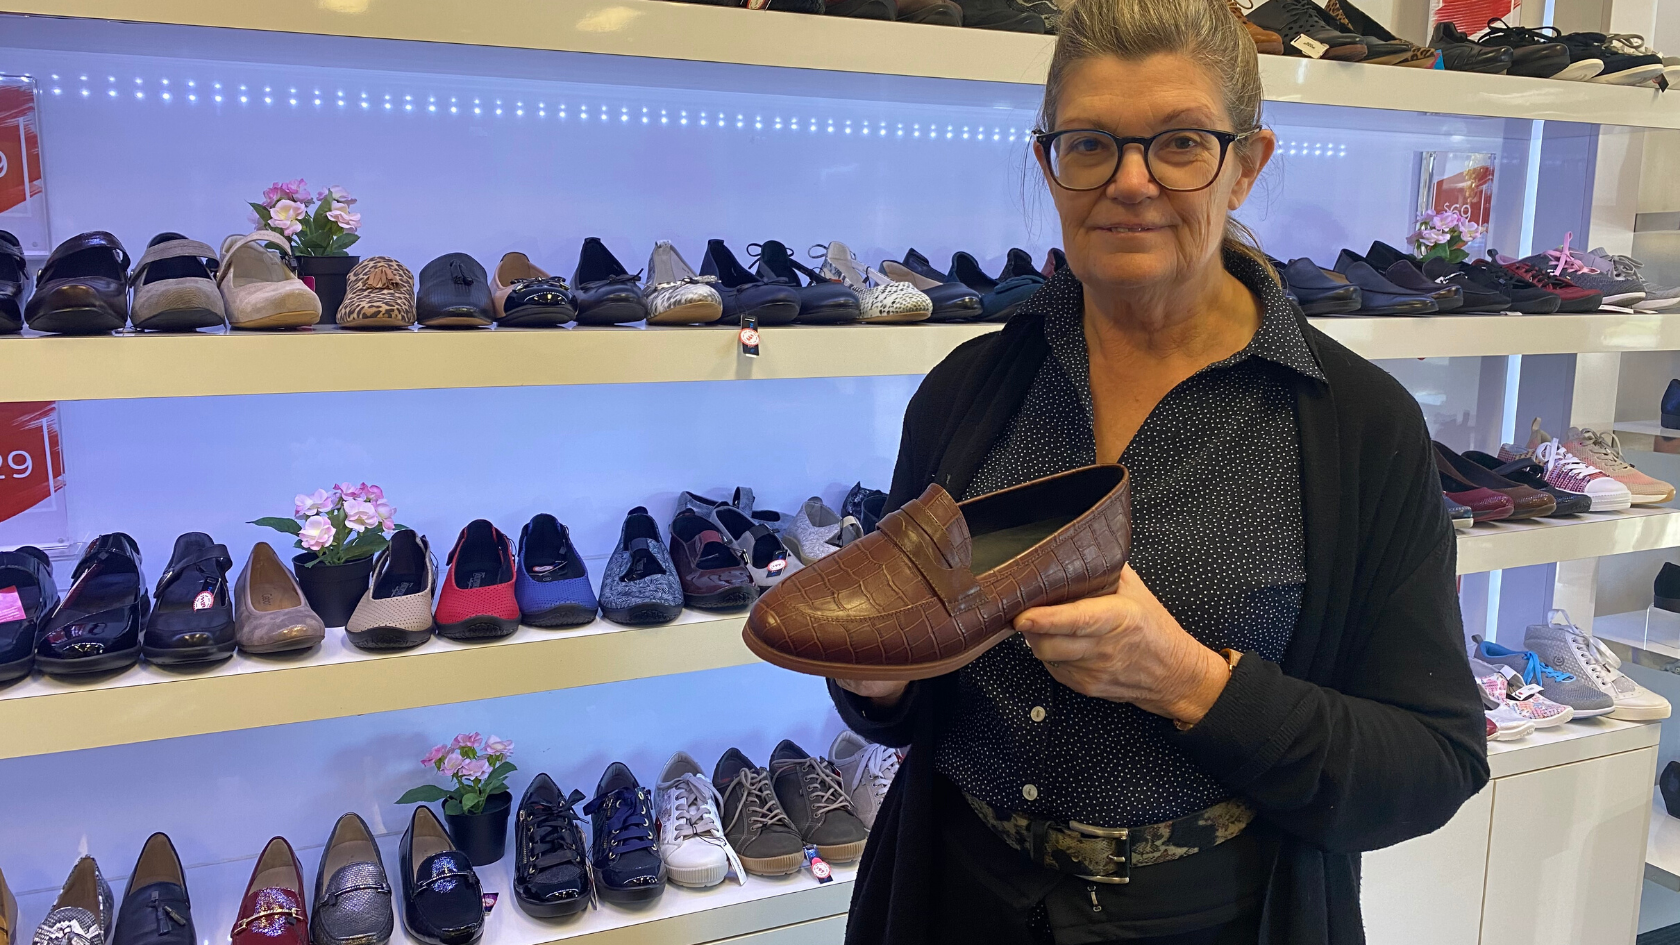 An older woman holding a brown leather loafer in front of a shoe display.